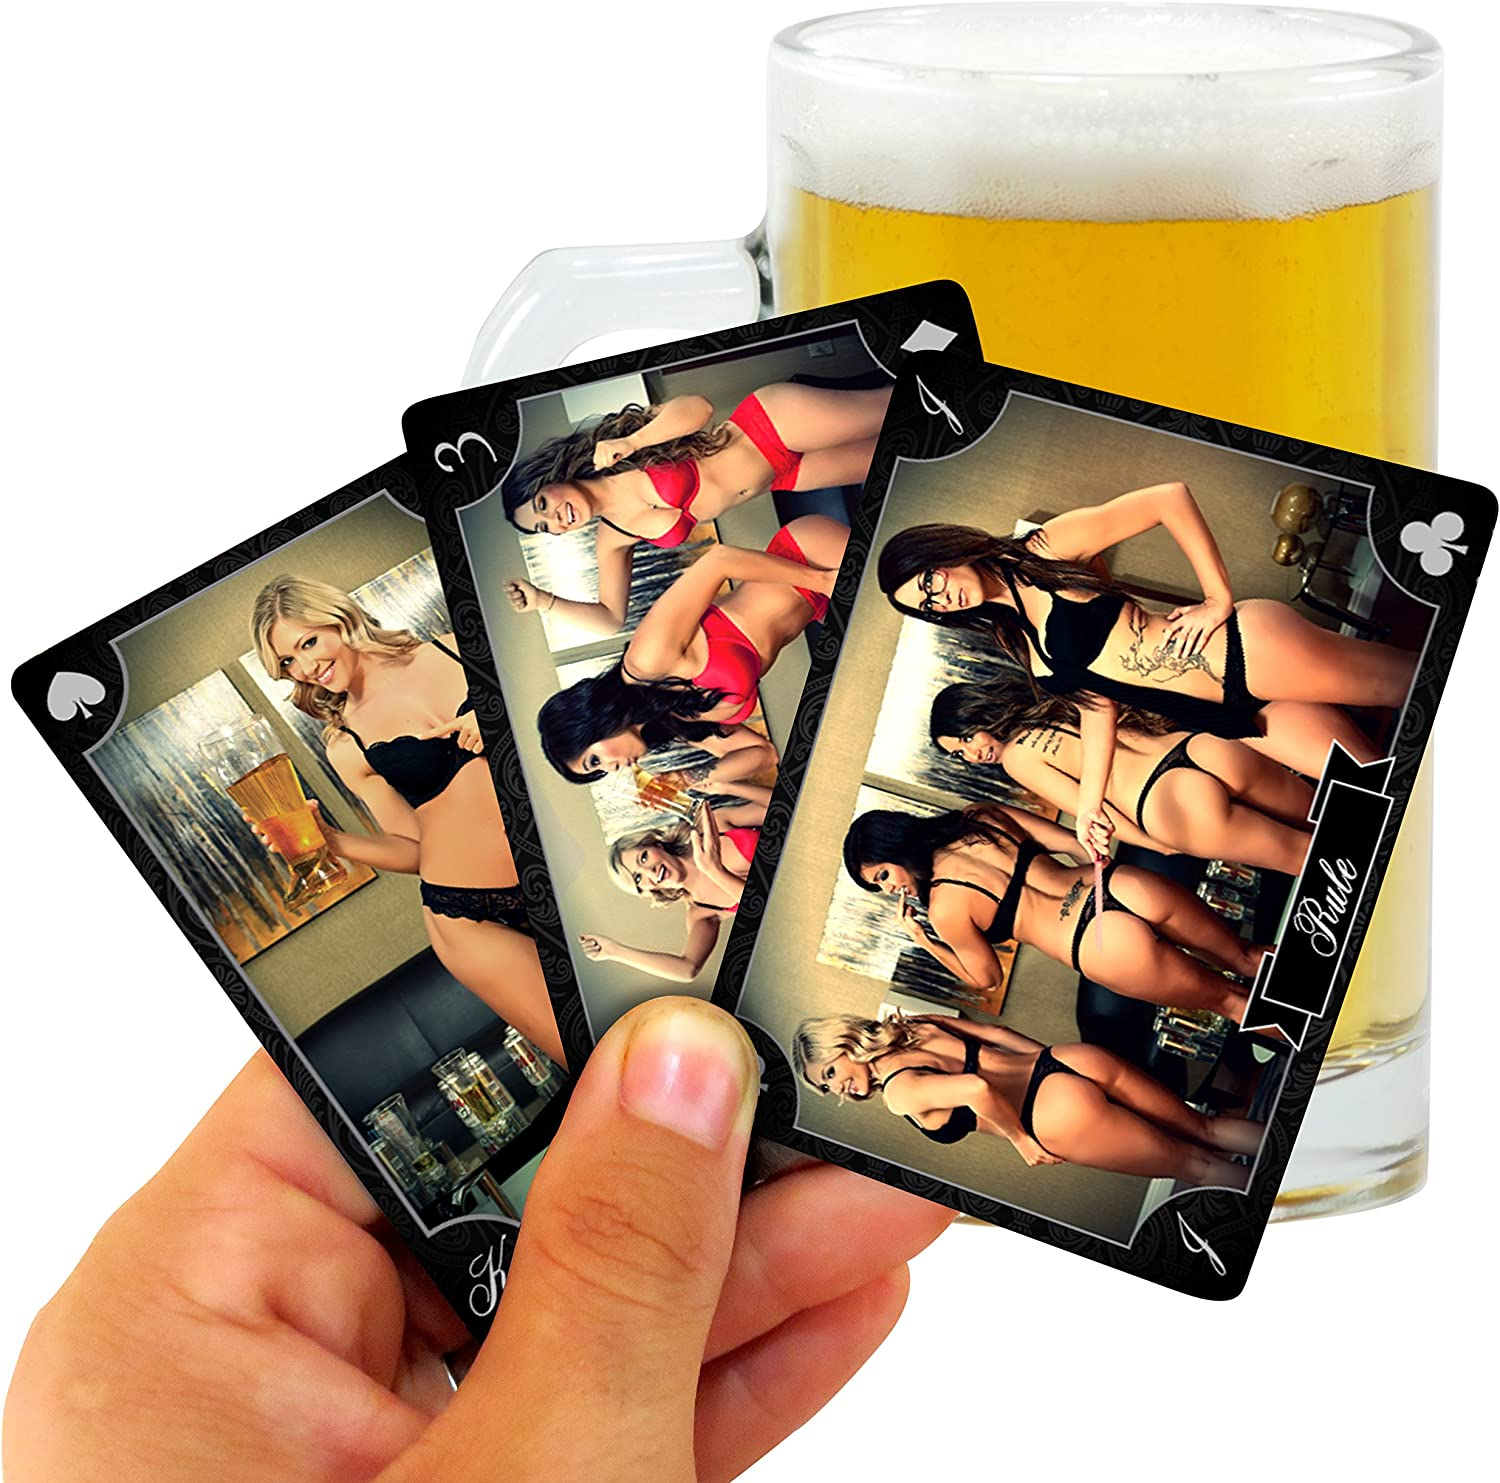 Kings Deck - The Kings Cup Drinking Game with Hot Chicks (Best Adult Party Game)